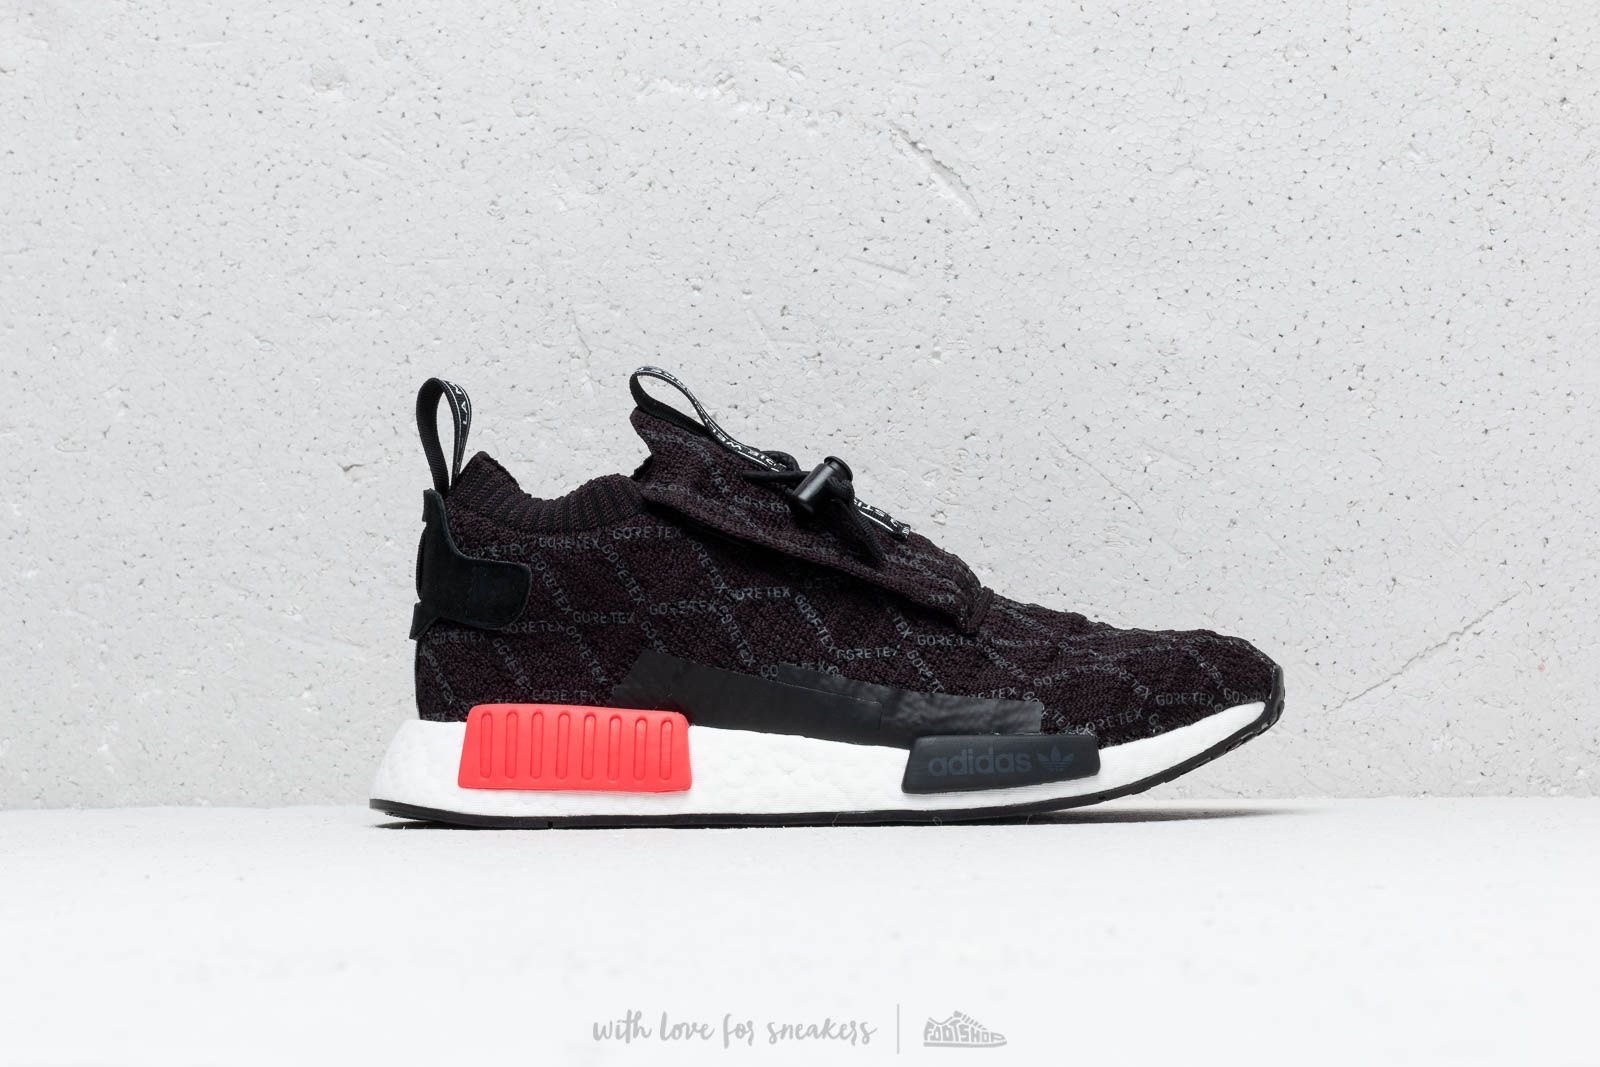 c1cafb1a4 adidas Nmd Ts1 Pk Gtx Core Black  Carbon  Shored at a great price  254 buy